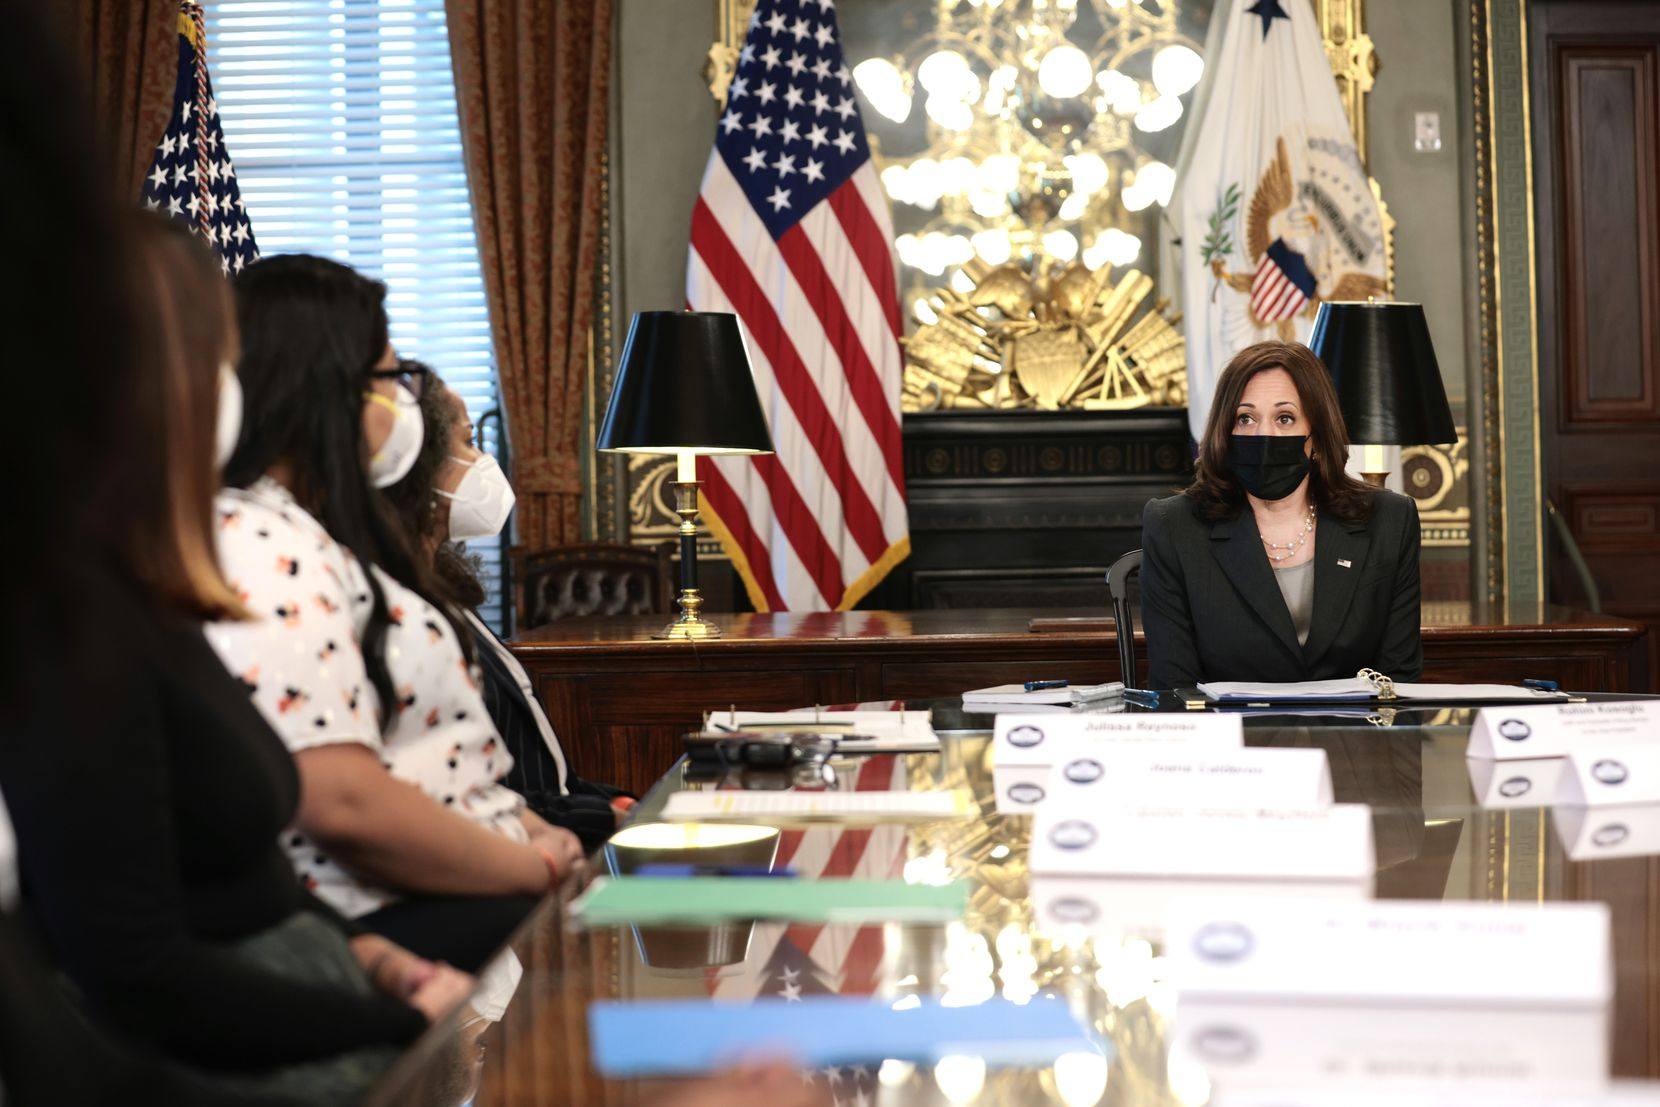 Vice President Kamala Harris speaks during a roundtable discussion on reproductive rights with health workers and women's rights activists in Eisenhower Executive Office Building on Sept. 9, 2021 in Washington, shortly after Attorney General Merrick Garland announced that the Department of Justice is filing a lawsuit against Texas over the state's restrictive law to ban almost all abortions.